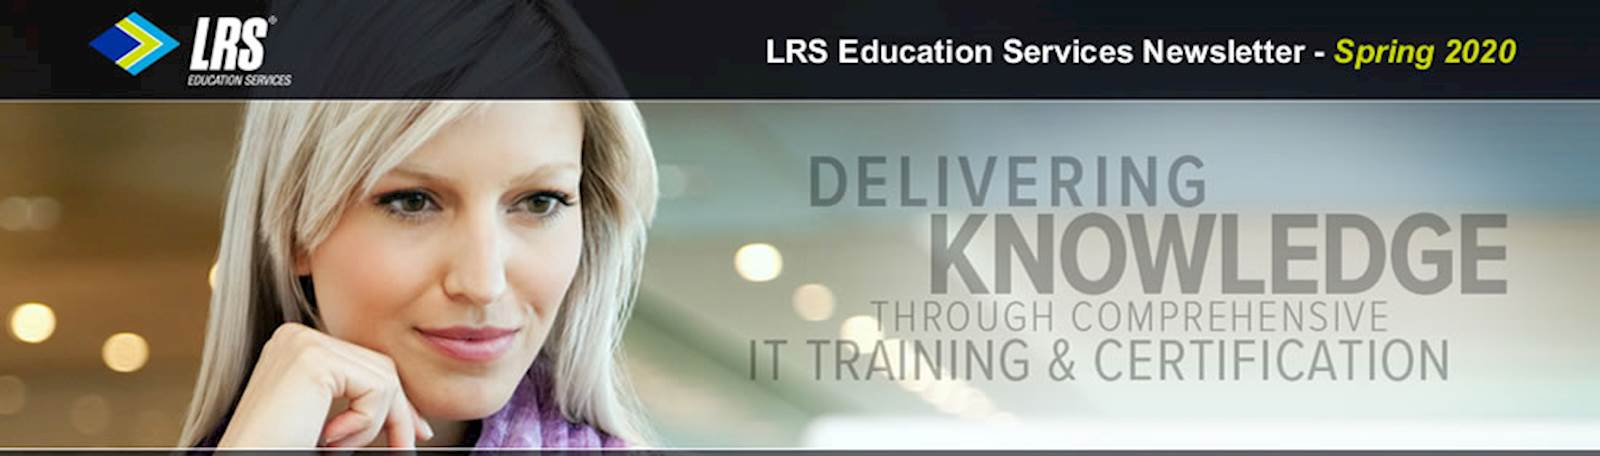 LRS Education Services home